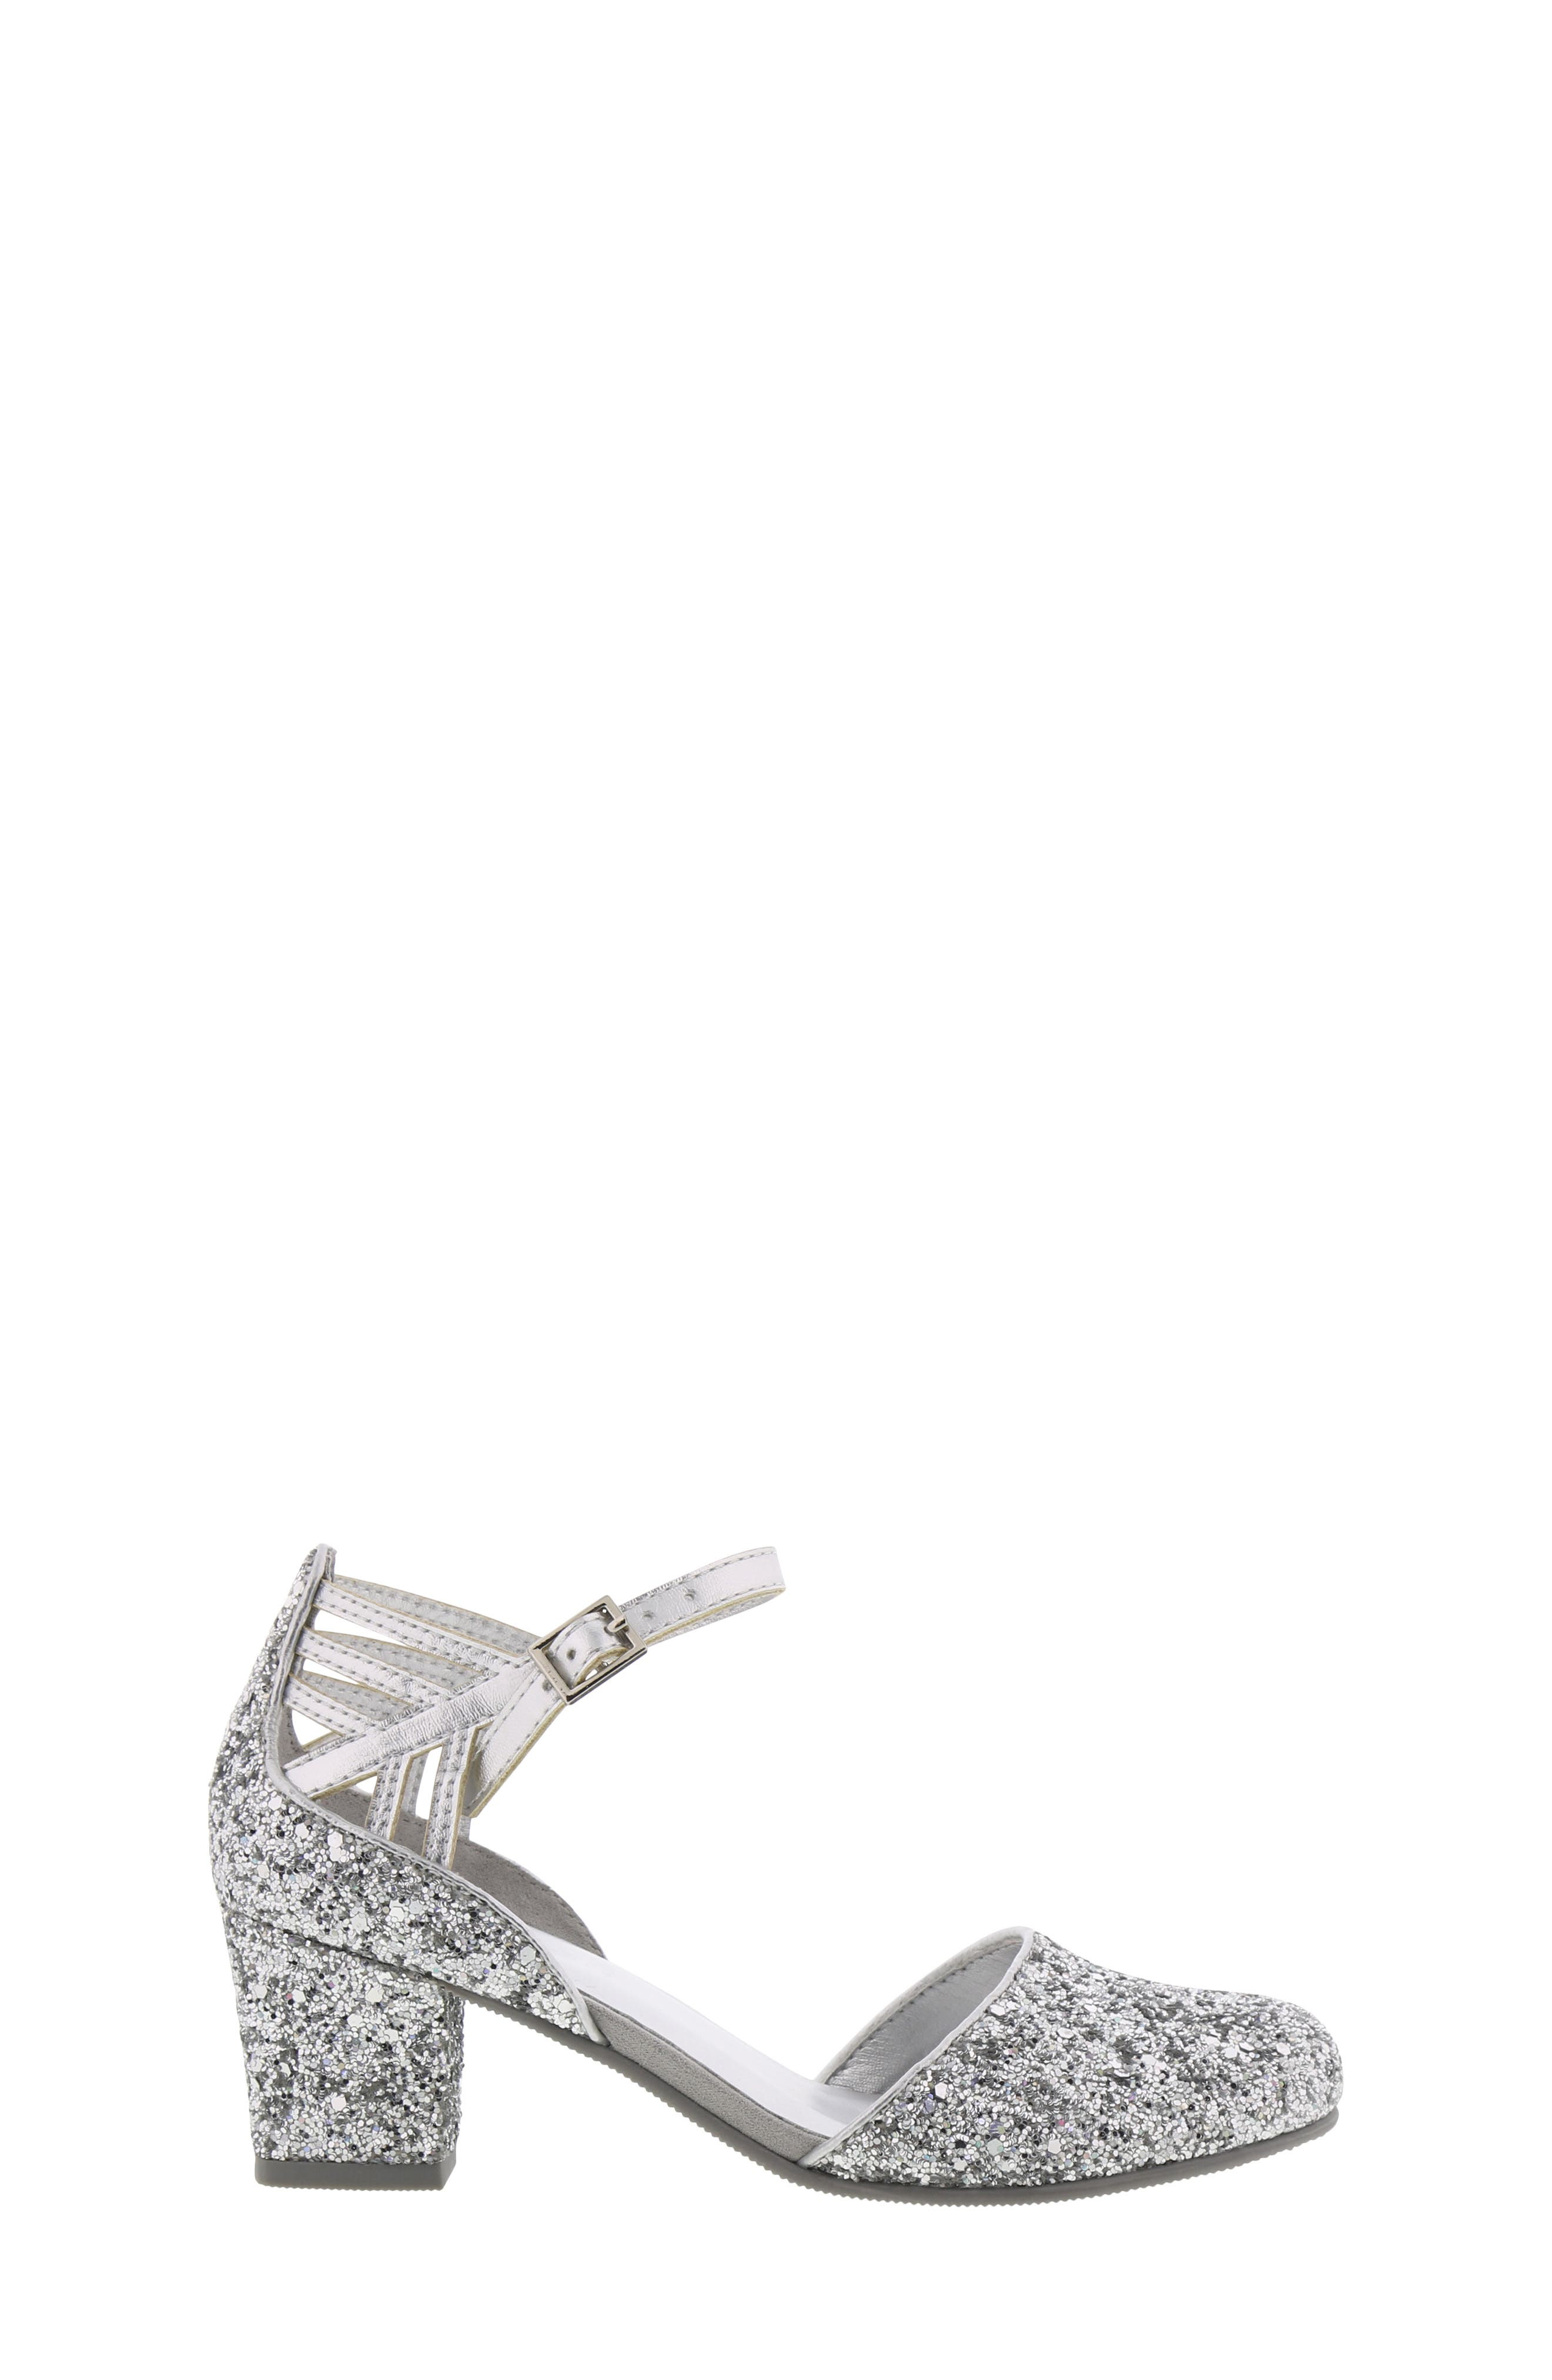 REACTION KENNETH COLE, Kenneth Cole New York Sarah Shine Pump, Alternate thumbnail 3, color, SILVER MULTI